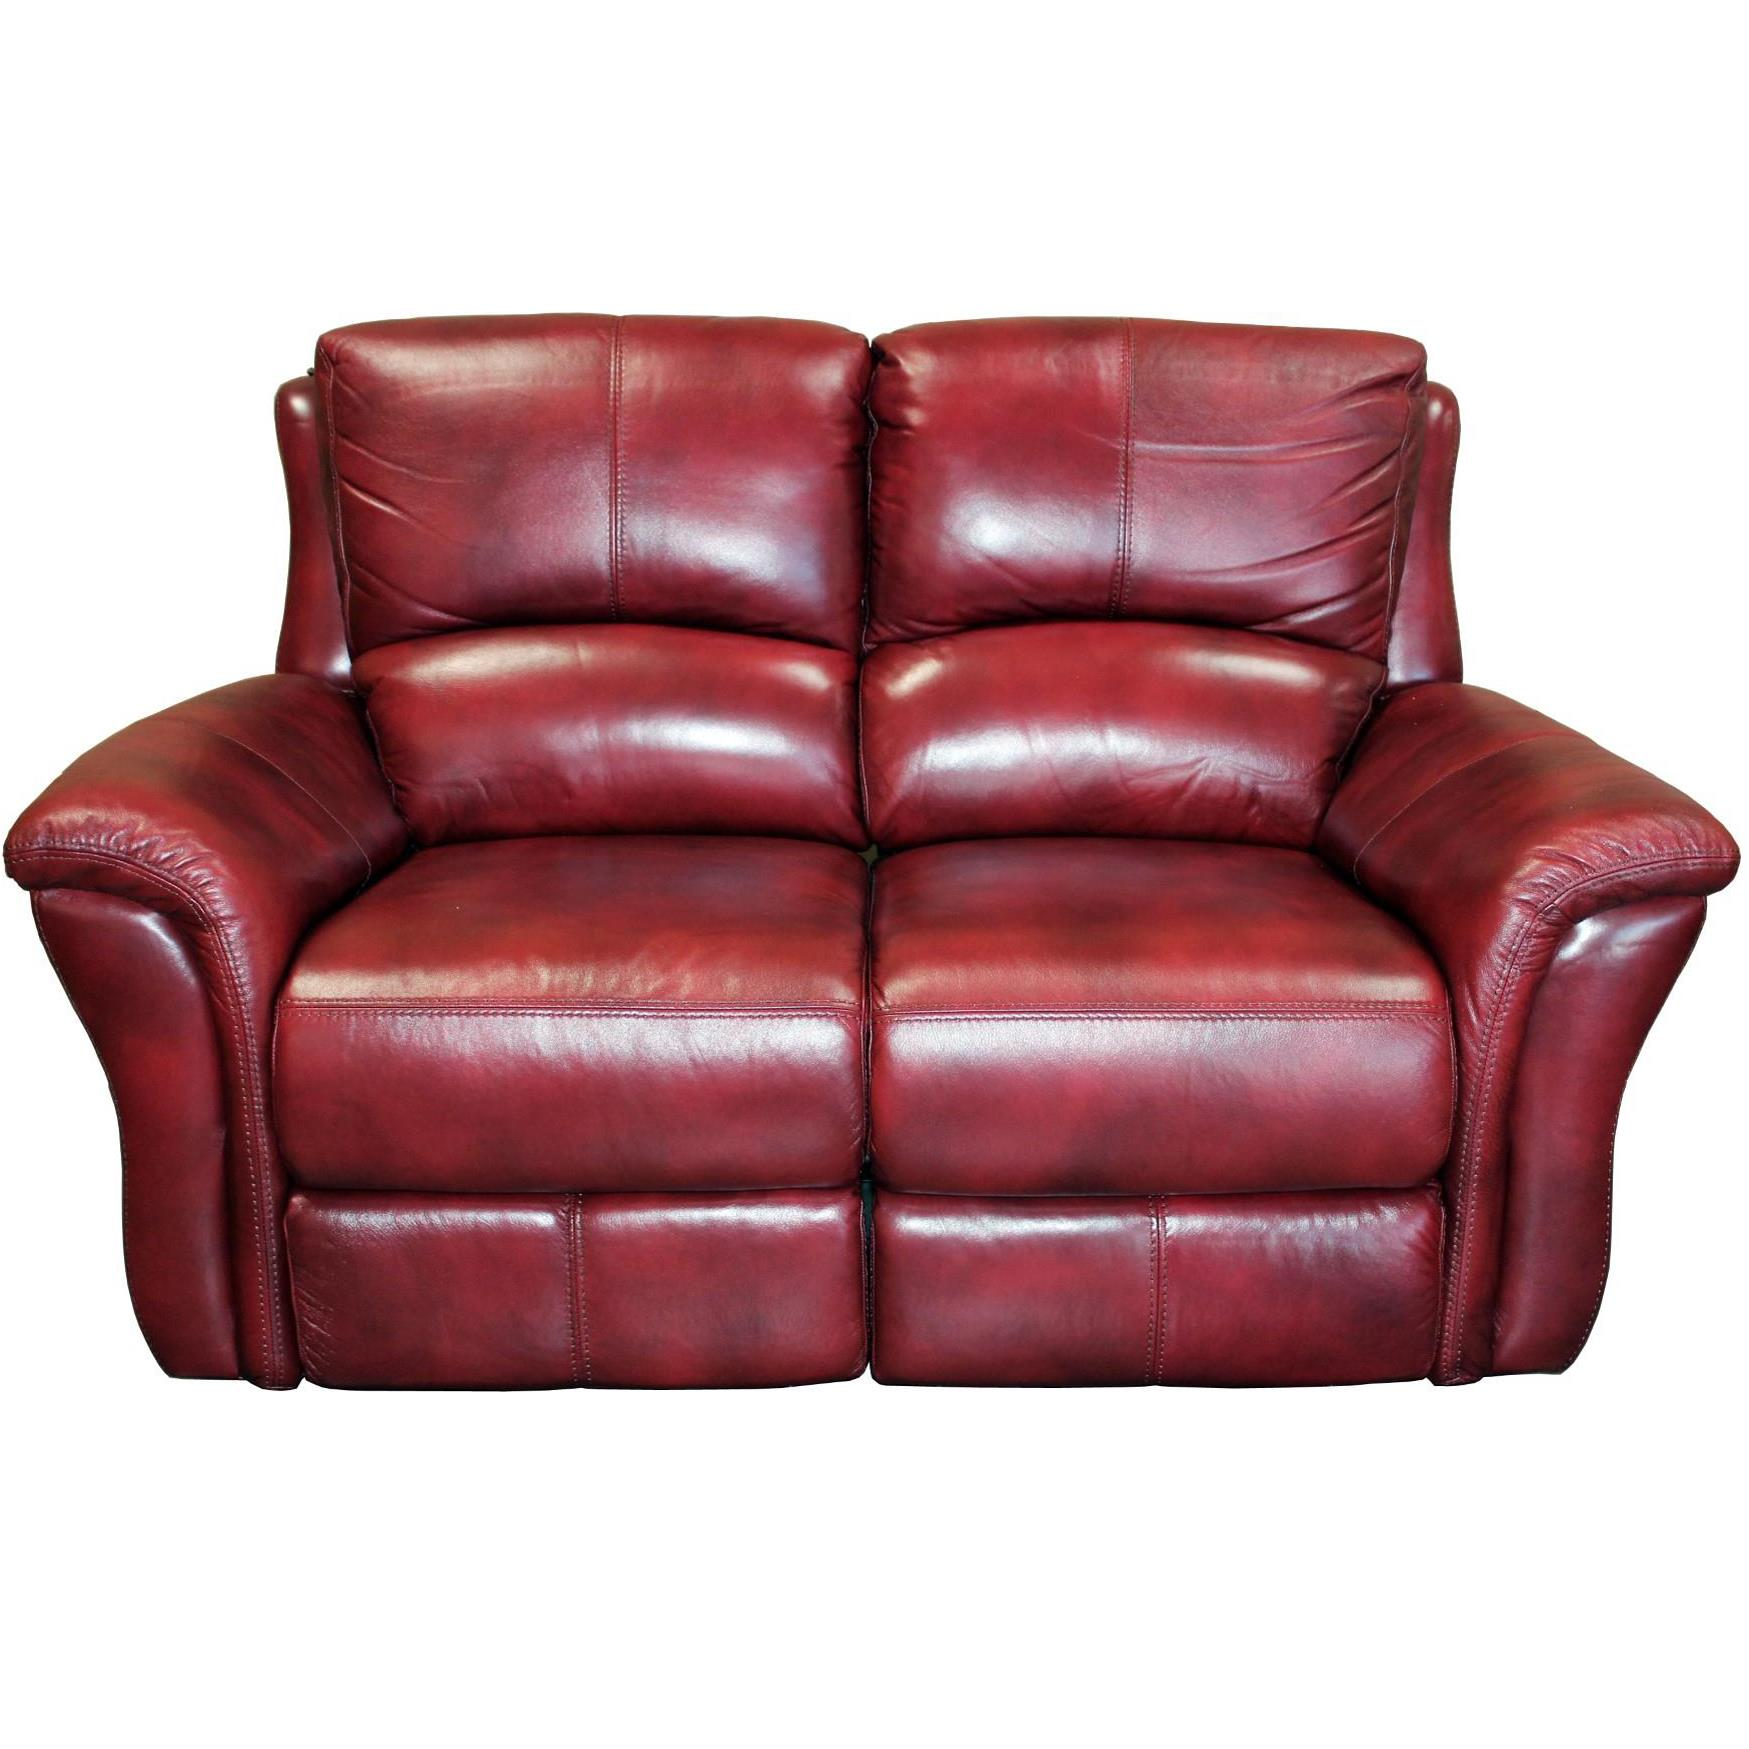 Parker Living Lewis Casual Power Reclining Love Seat - Item Number: MLEW-822P-LI